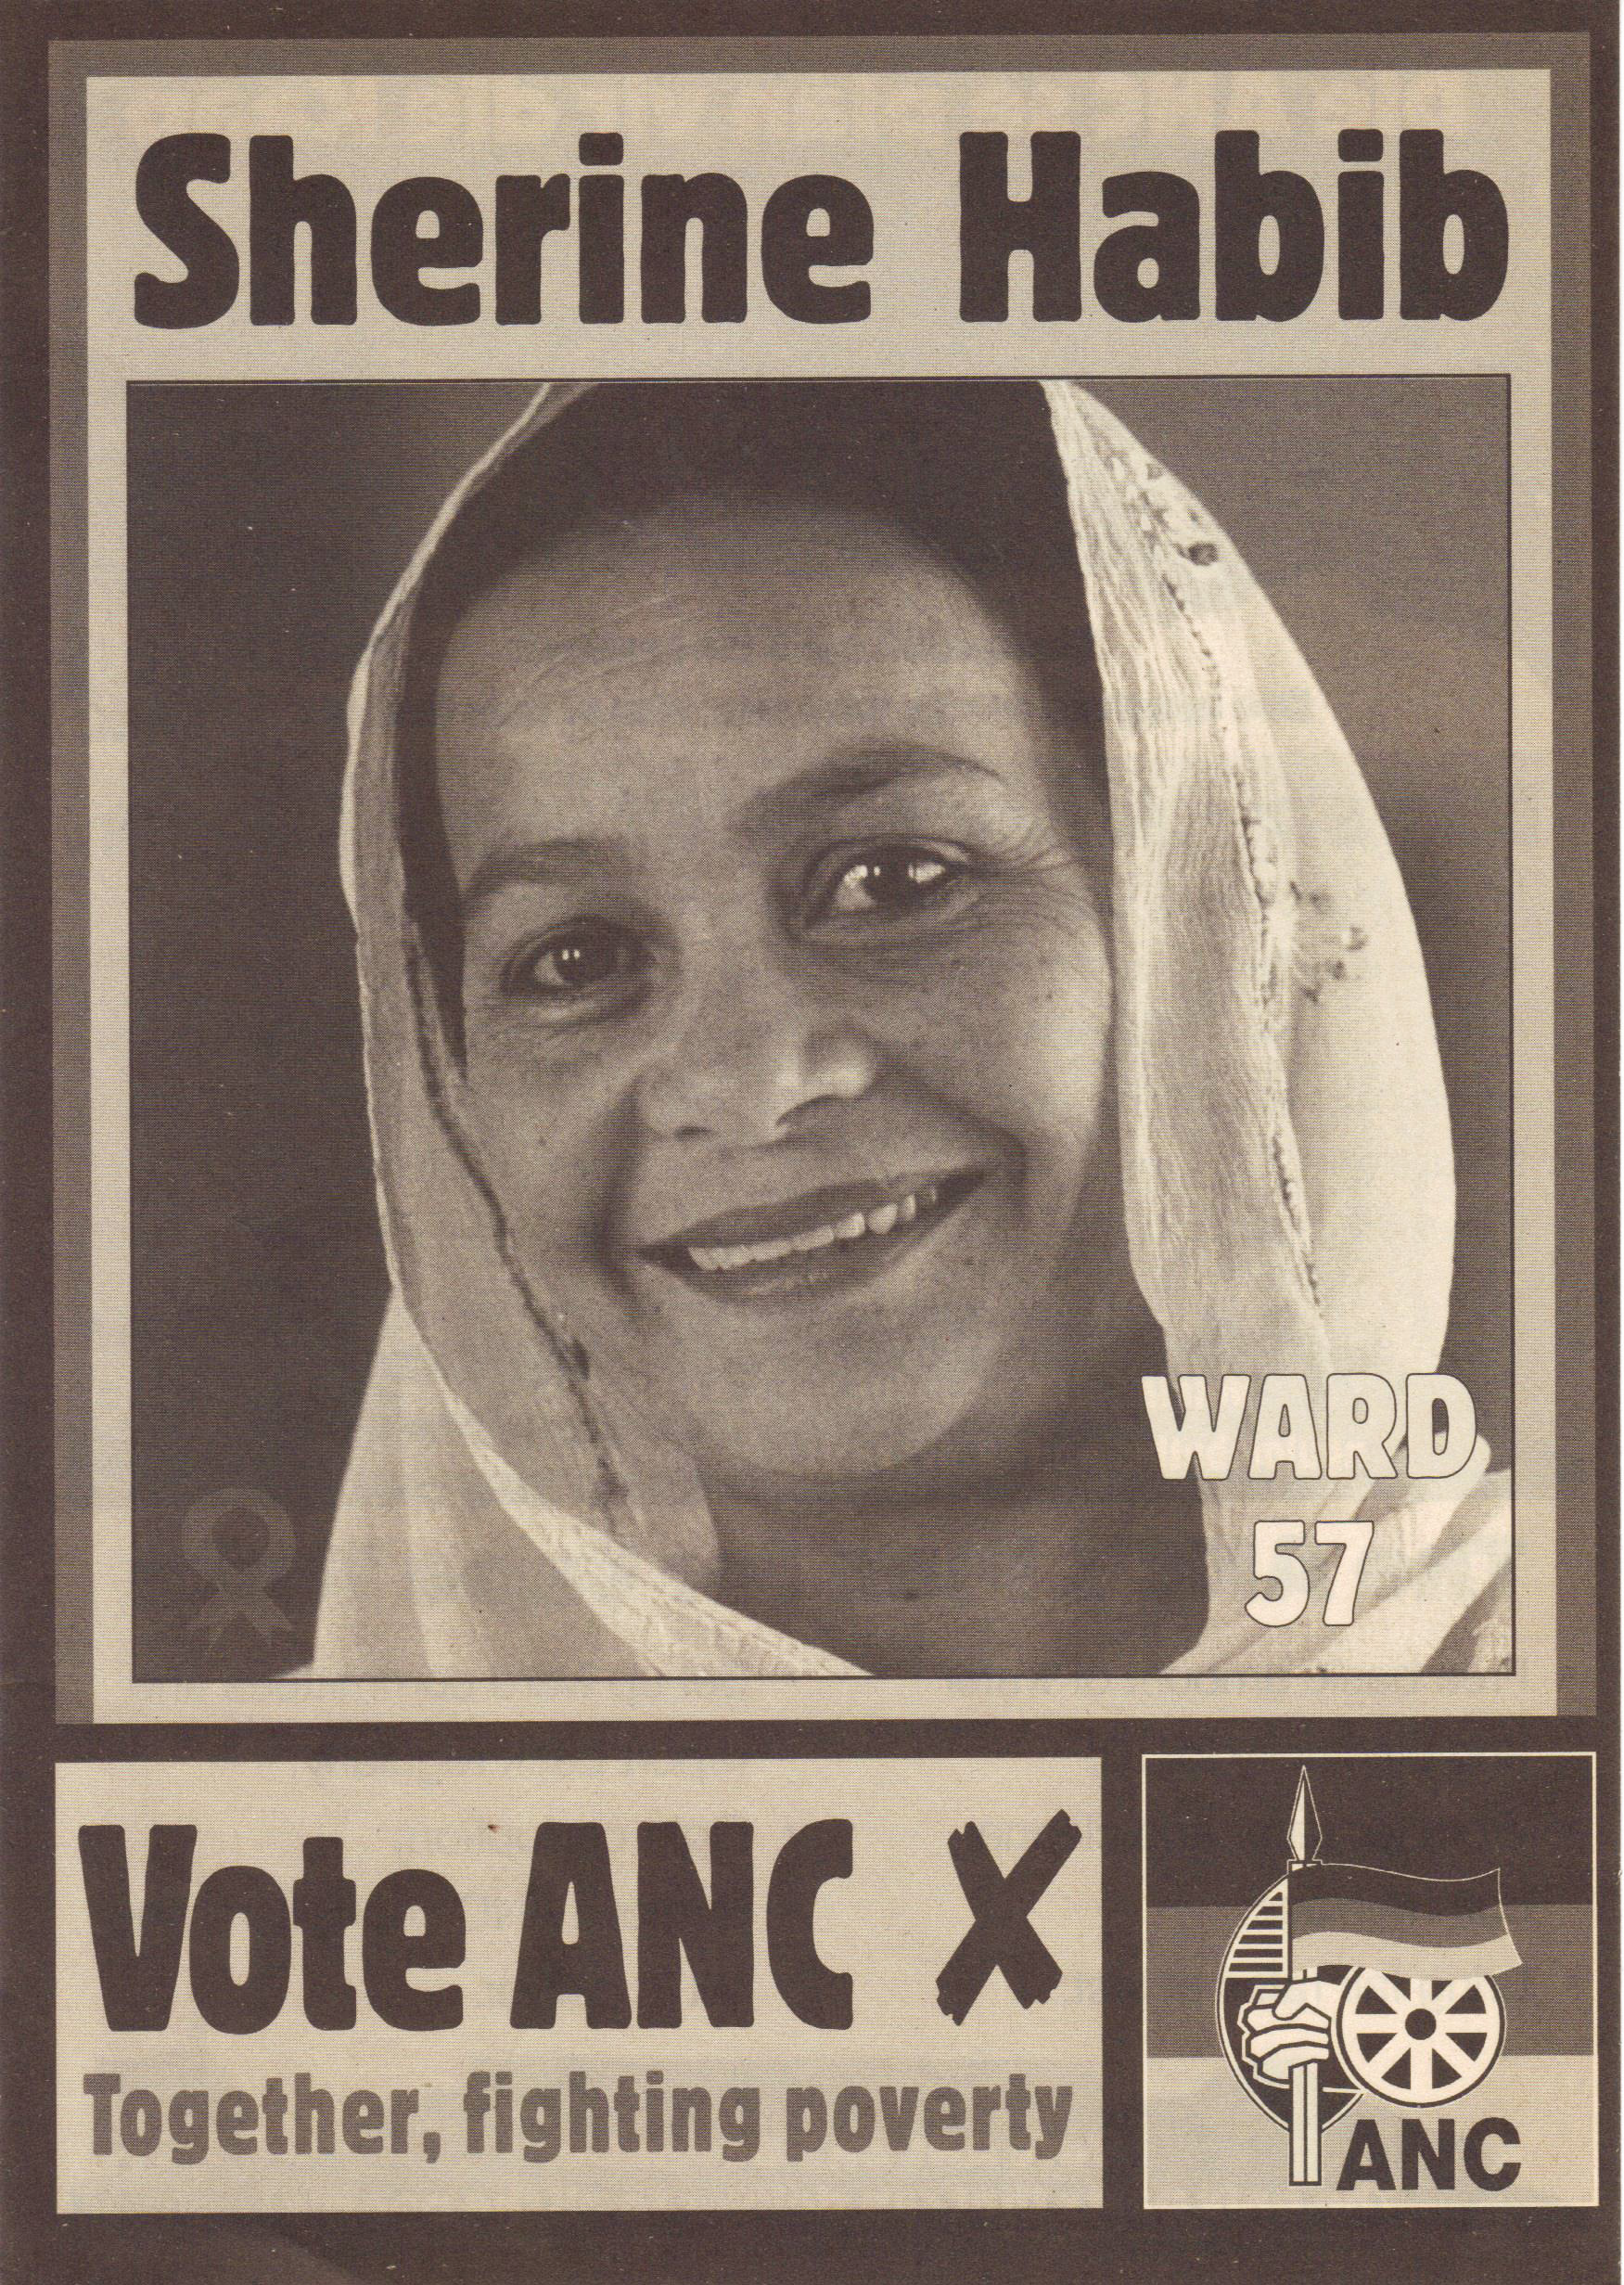 Shereen ran for Bo-Kaap ward councillor. Her name had been spelt incorrectly on her birth certificate by Apartheid authorities, and the spelling had to be maintained on these posters.